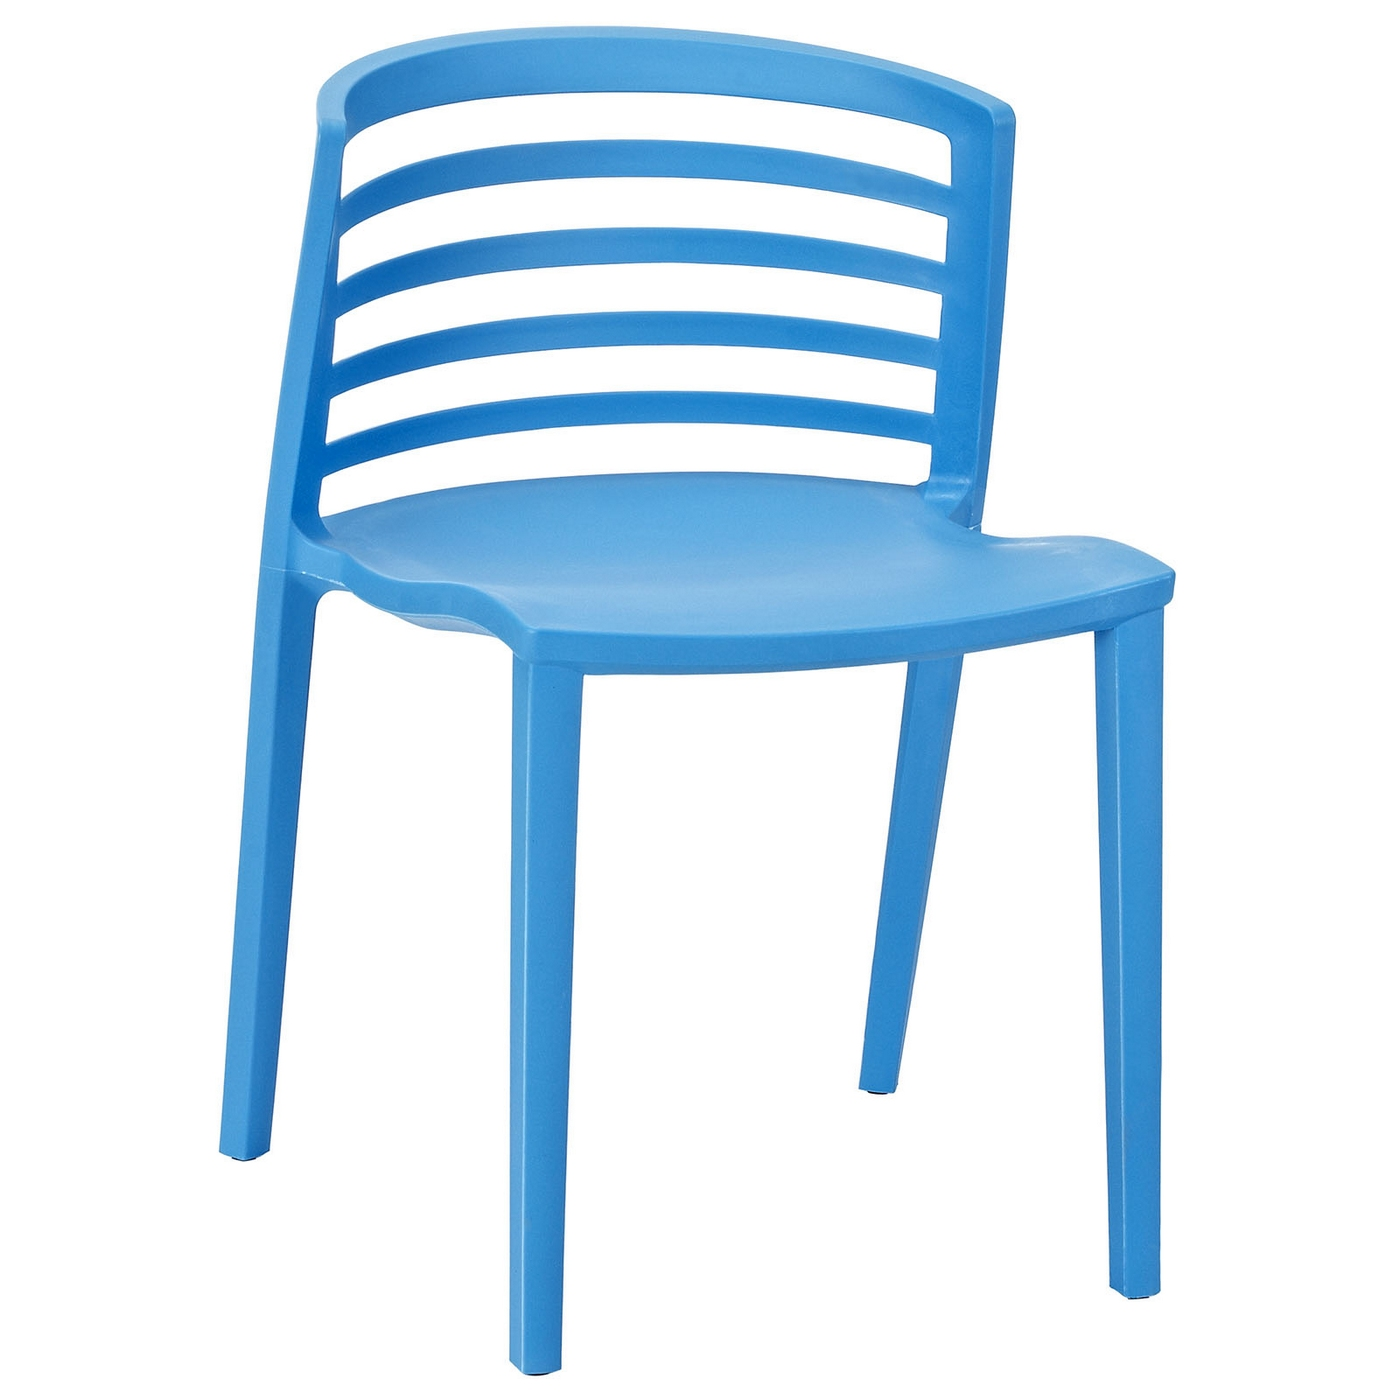 Curvy modern multi purpose molded plastic side chair blue for Blue plastic chair